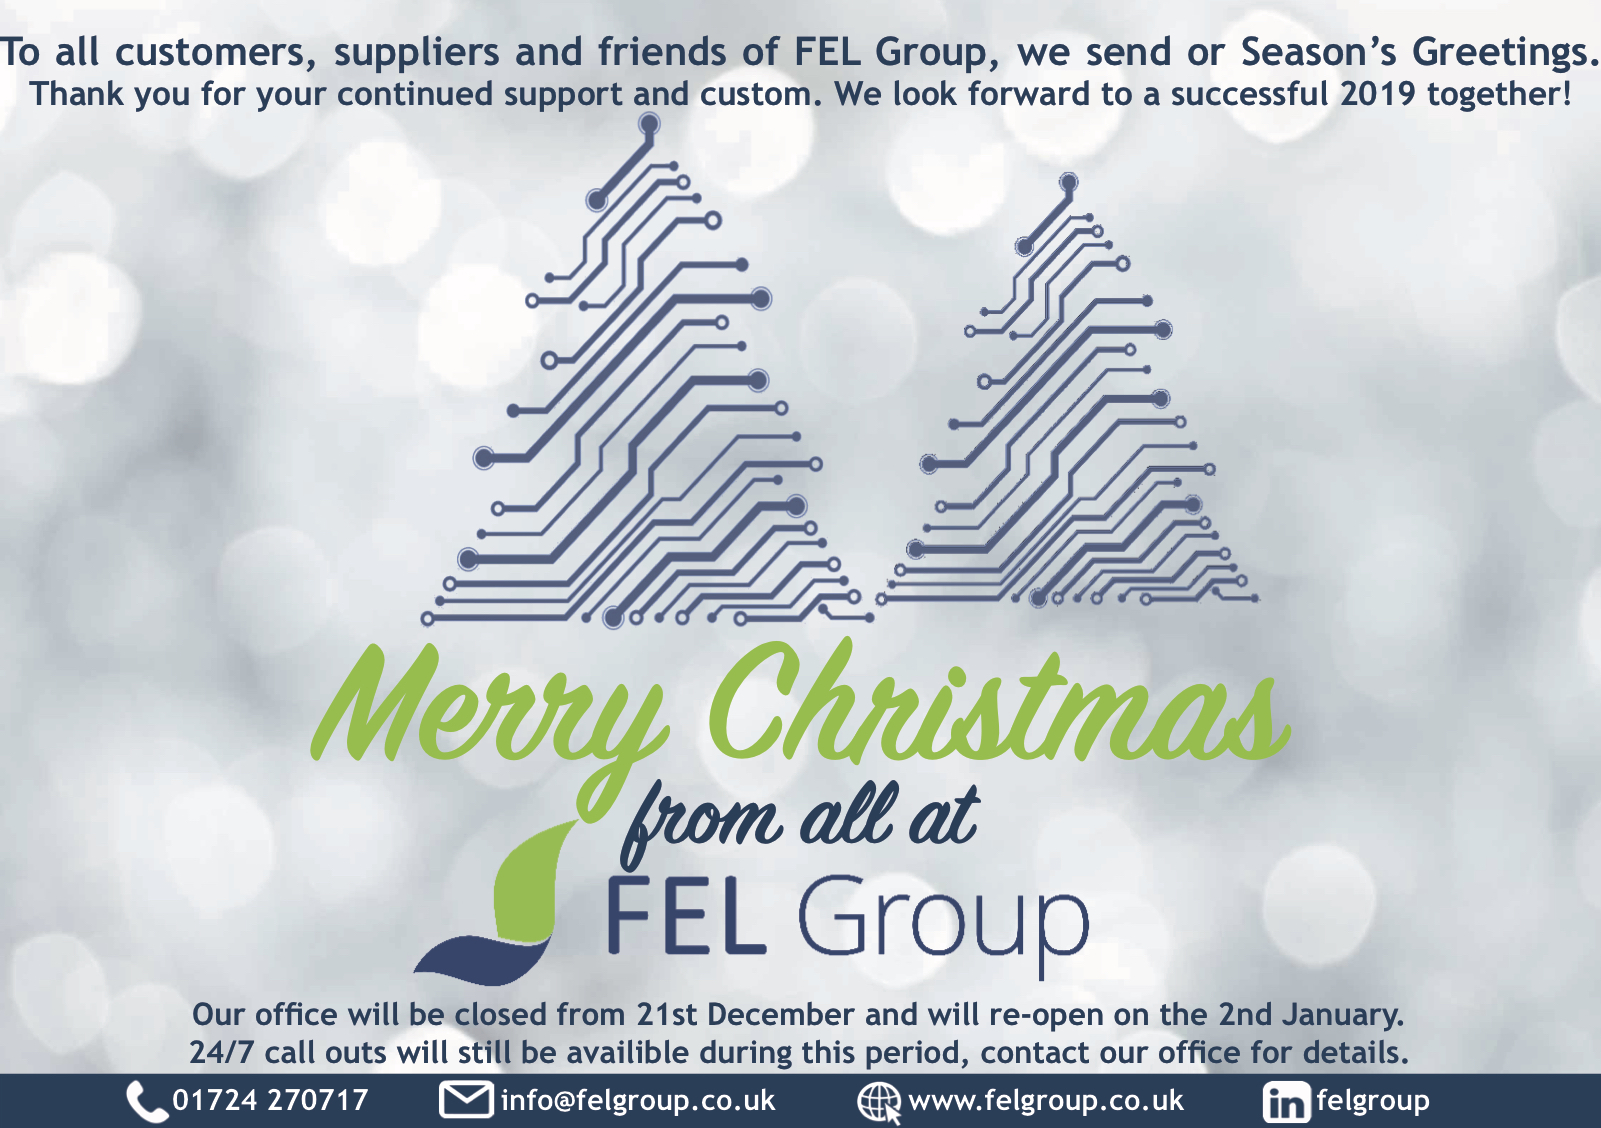 FEL-Group-Christmas.jpg?mtime=20181218134752#asset:1268